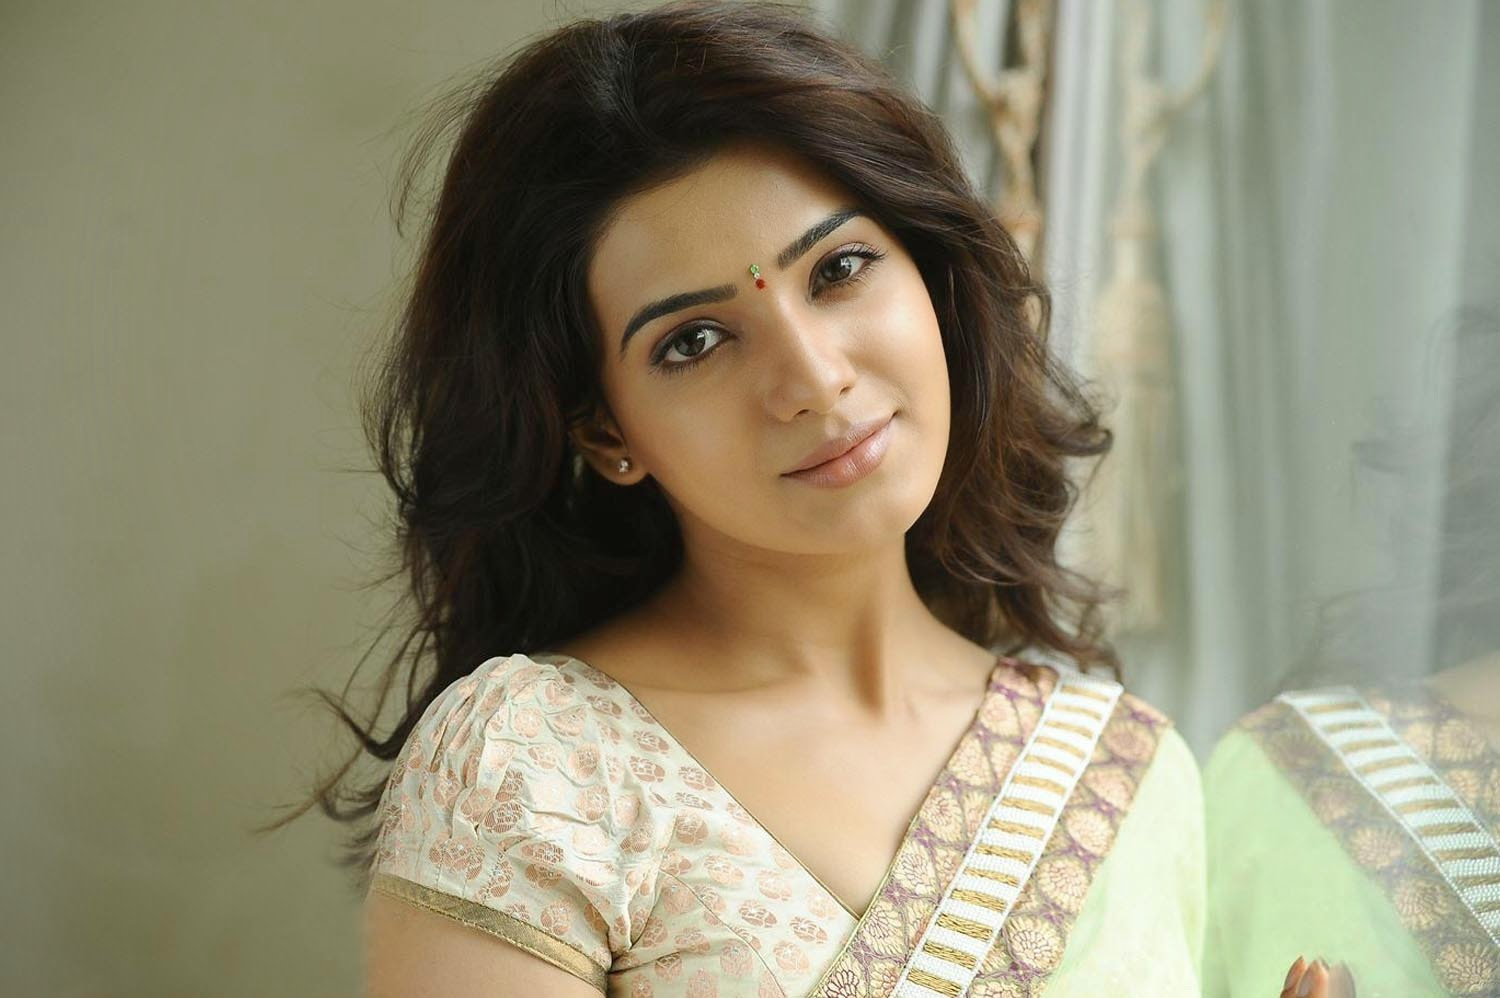 samantha-ruth-prabhu-wallpaper-pictures-54811-56546-hd-wallpapers